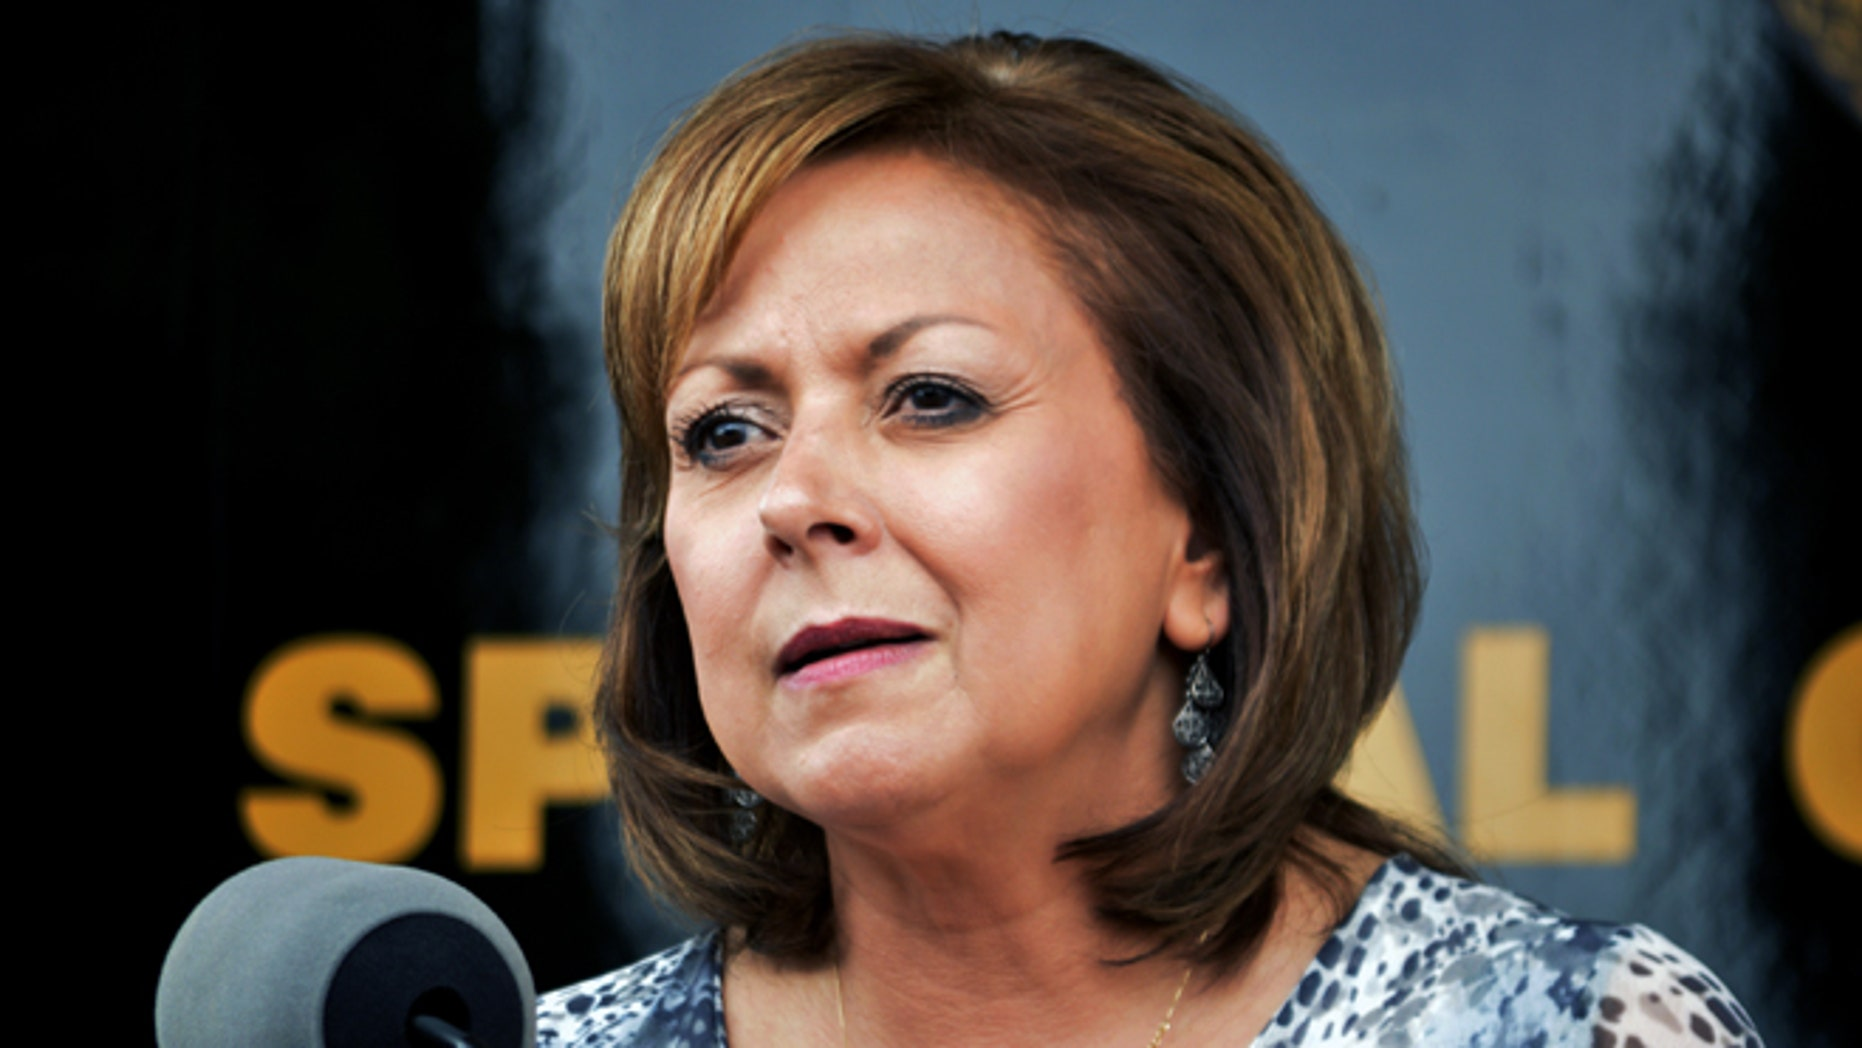 """FILE - This Sept. 4, 2015 file photo New Mexico Gov. Susana Martinez speaks at a press conference Albuquerque, N.M. Martinez says she's confident a close political adviser, Jay McCleskey, did nothing wrong and called allegations of fundraising violations """"cheap shots."""" The Republican governor told The Associated Press in a statement that she's aware of complaints being raised and said they came from political opponents who have tried to attack her previously. (AP Photo/Russell Contreras,File)"""